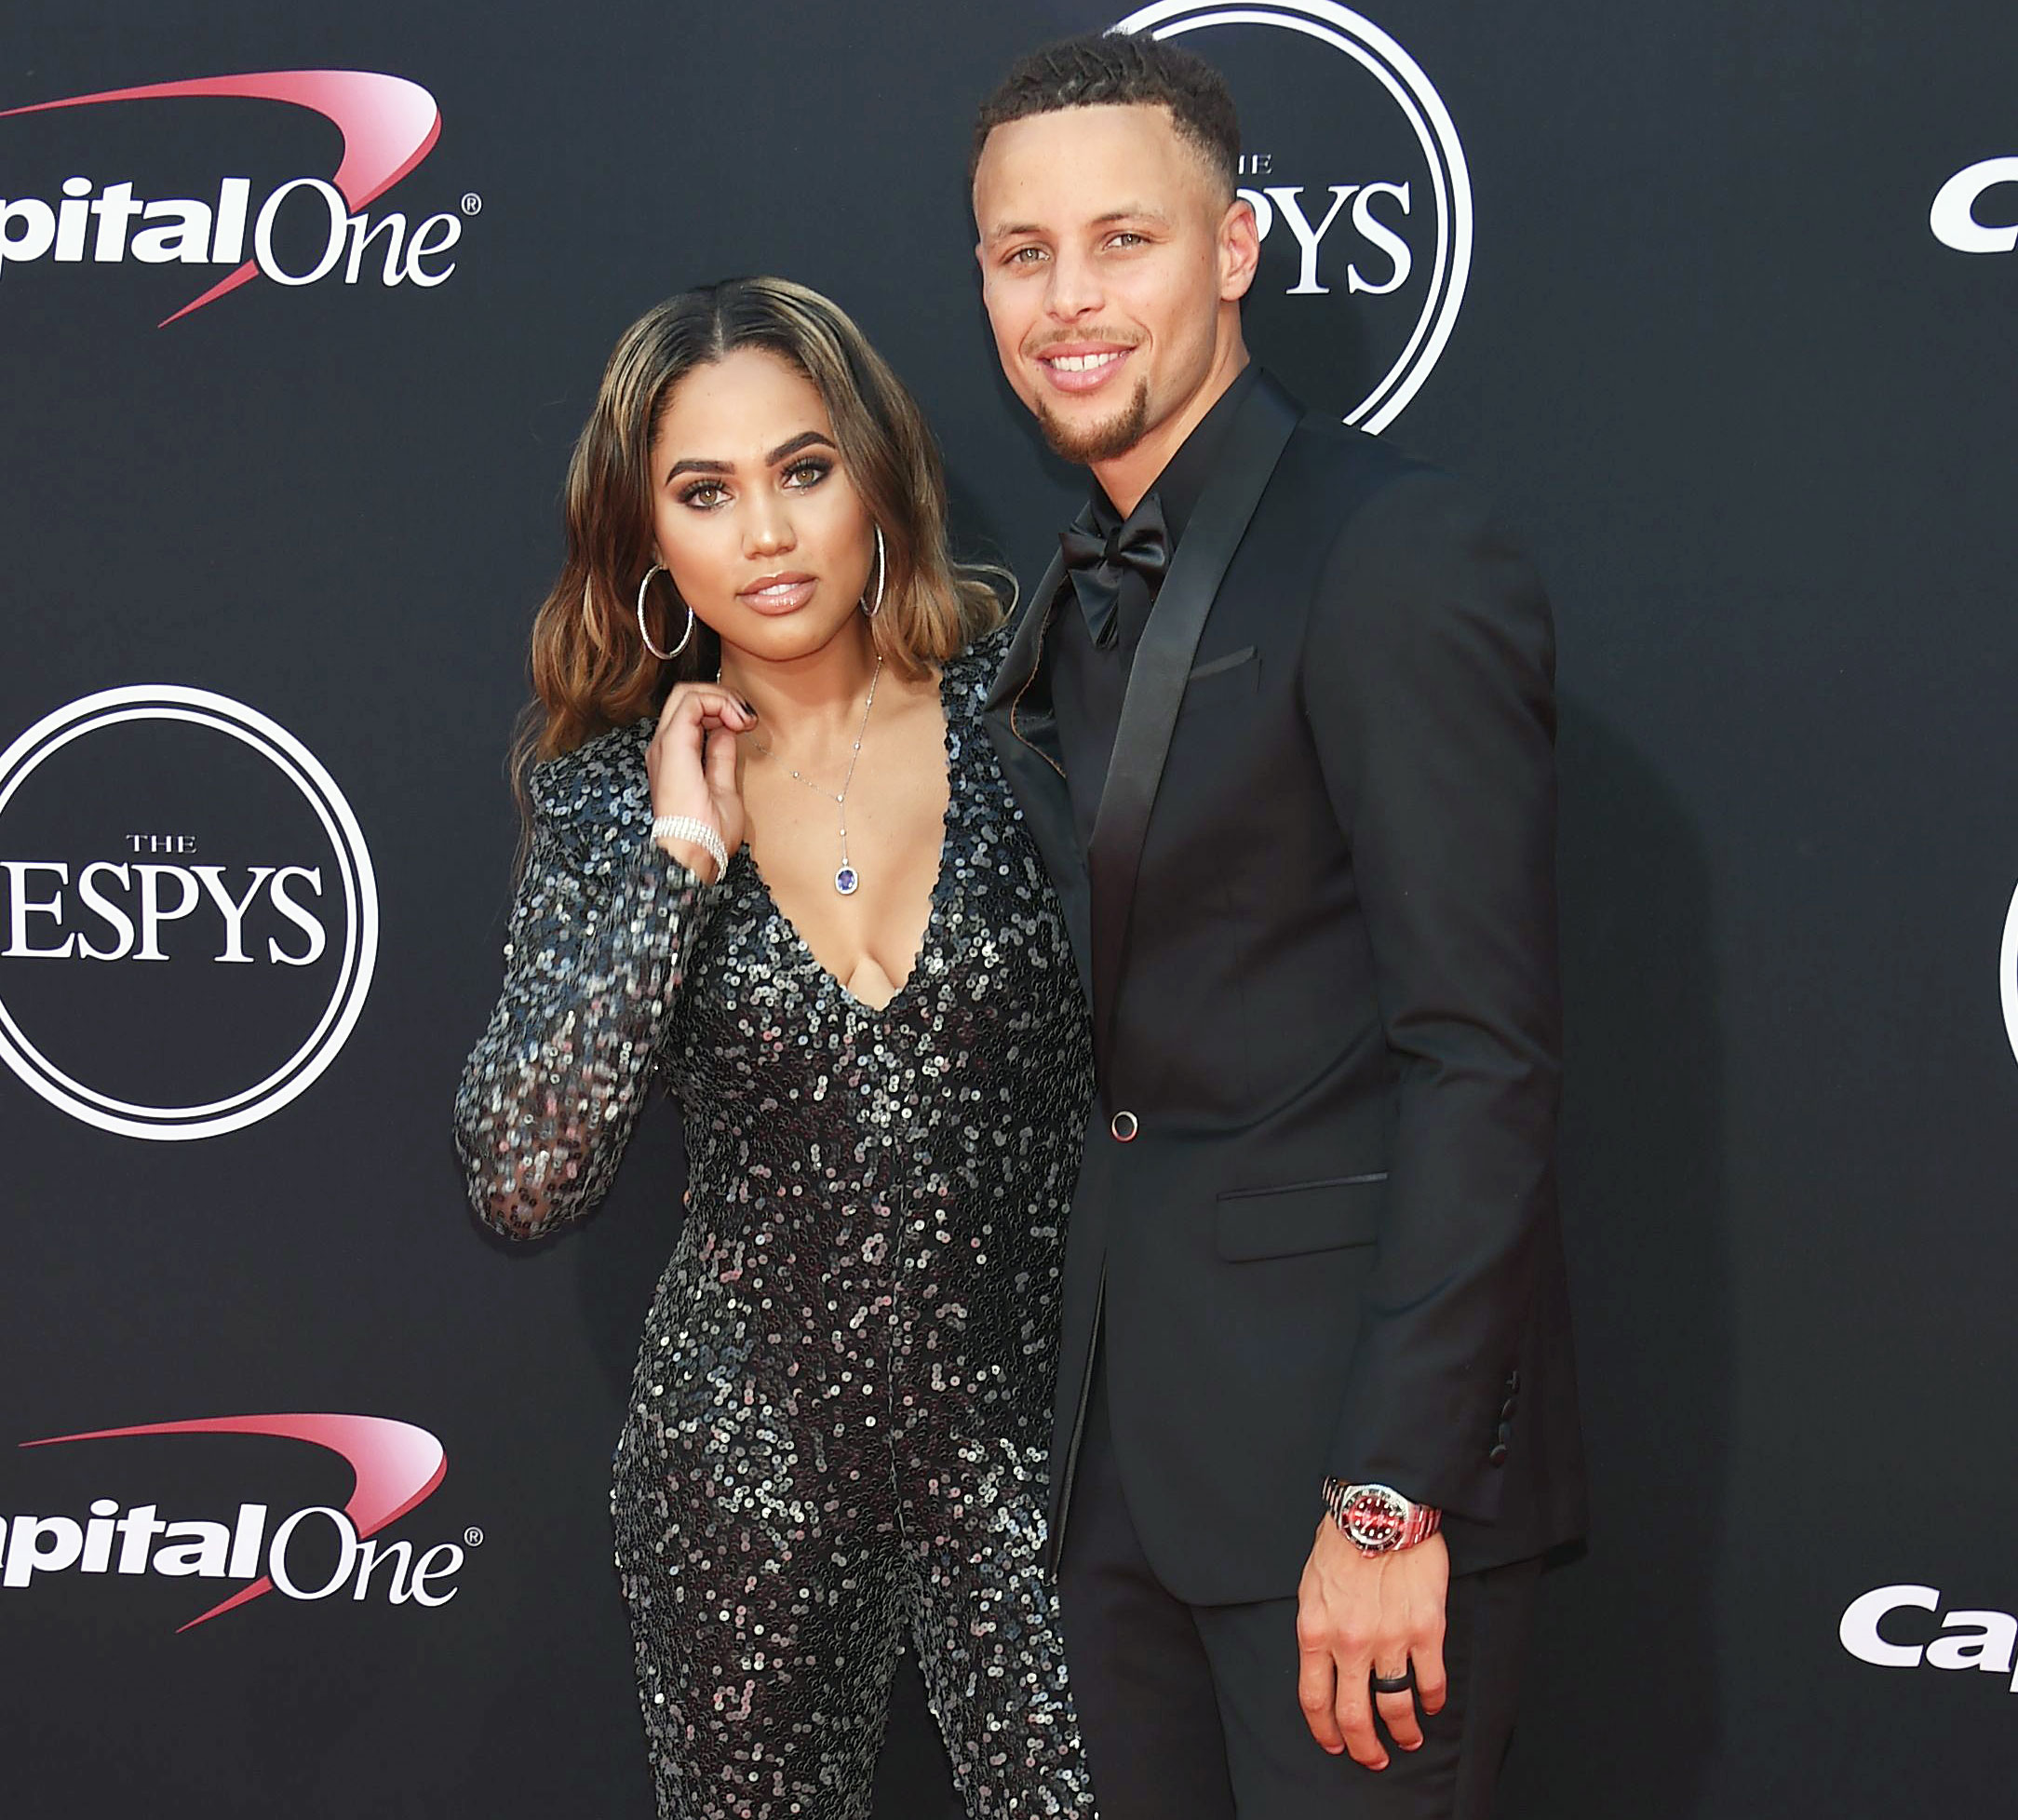 Ayesha Curry and Stephen Curry attend the ESPY Awards Ayesha Curry Looks Ahead After Temporary Closure of Her Restaurants